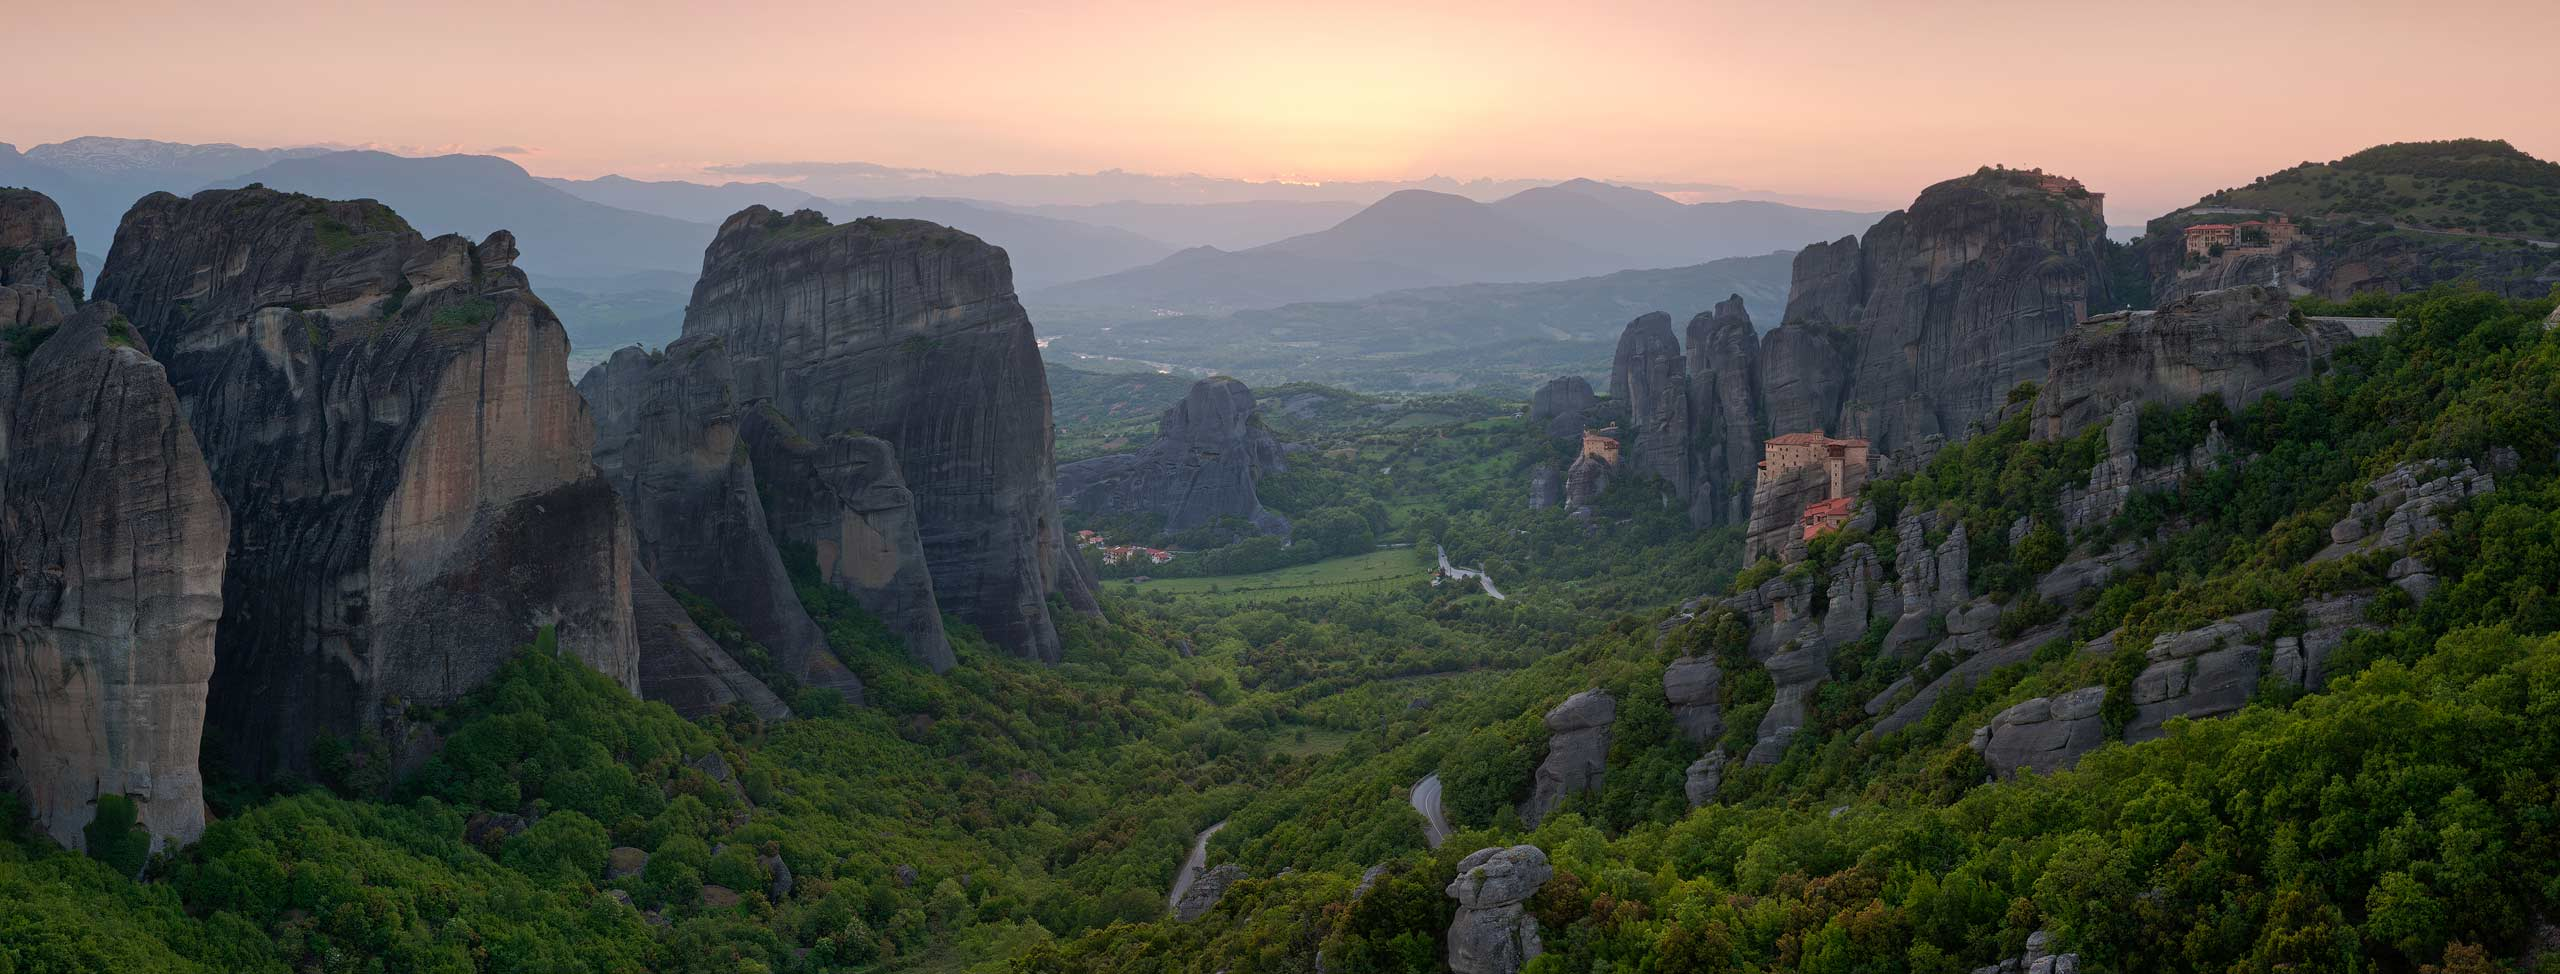 Monasteries of Meteora at sunset, Thessaly Greece - Meteora-Monasteries-Greece - Mike Reyfman Photography